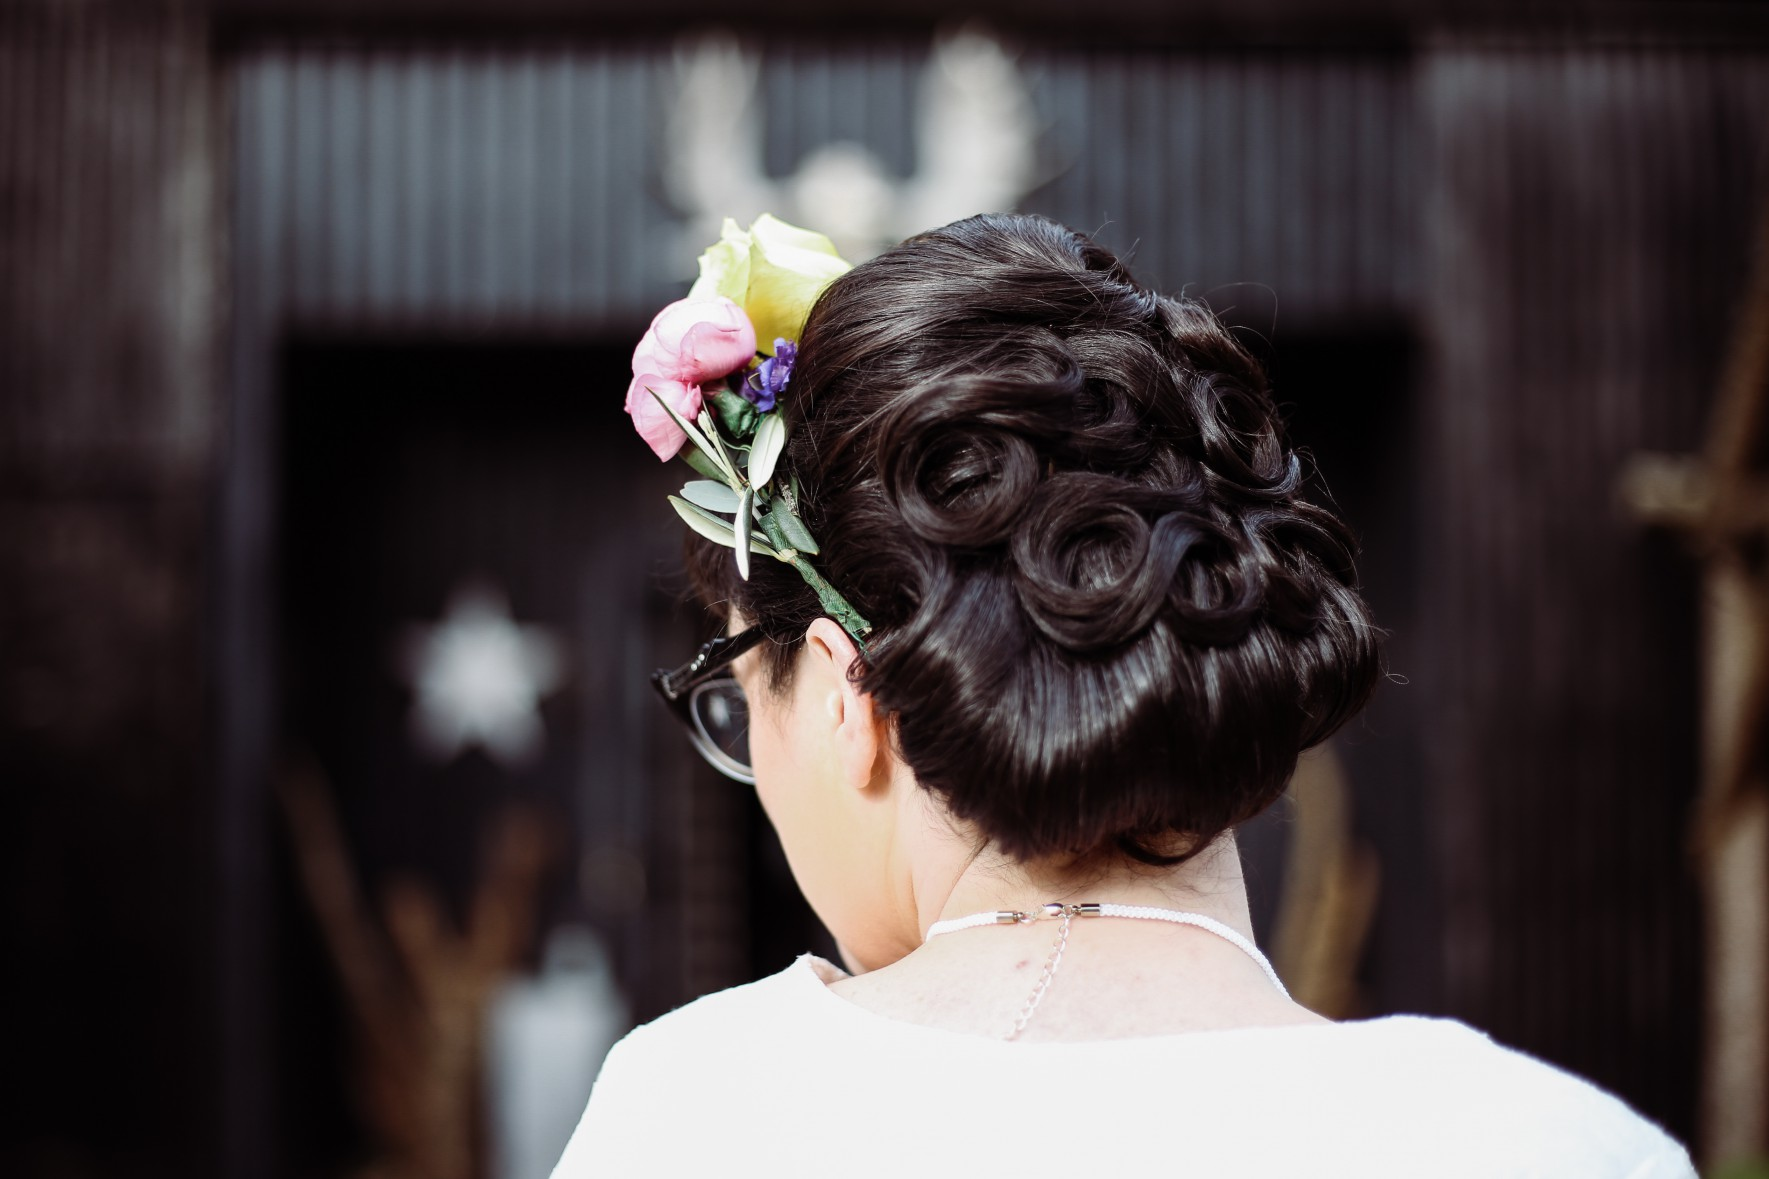 Becky Payne Photographer - Rainbow Unicorn Styled Wedding Shoot - Woods - Hair